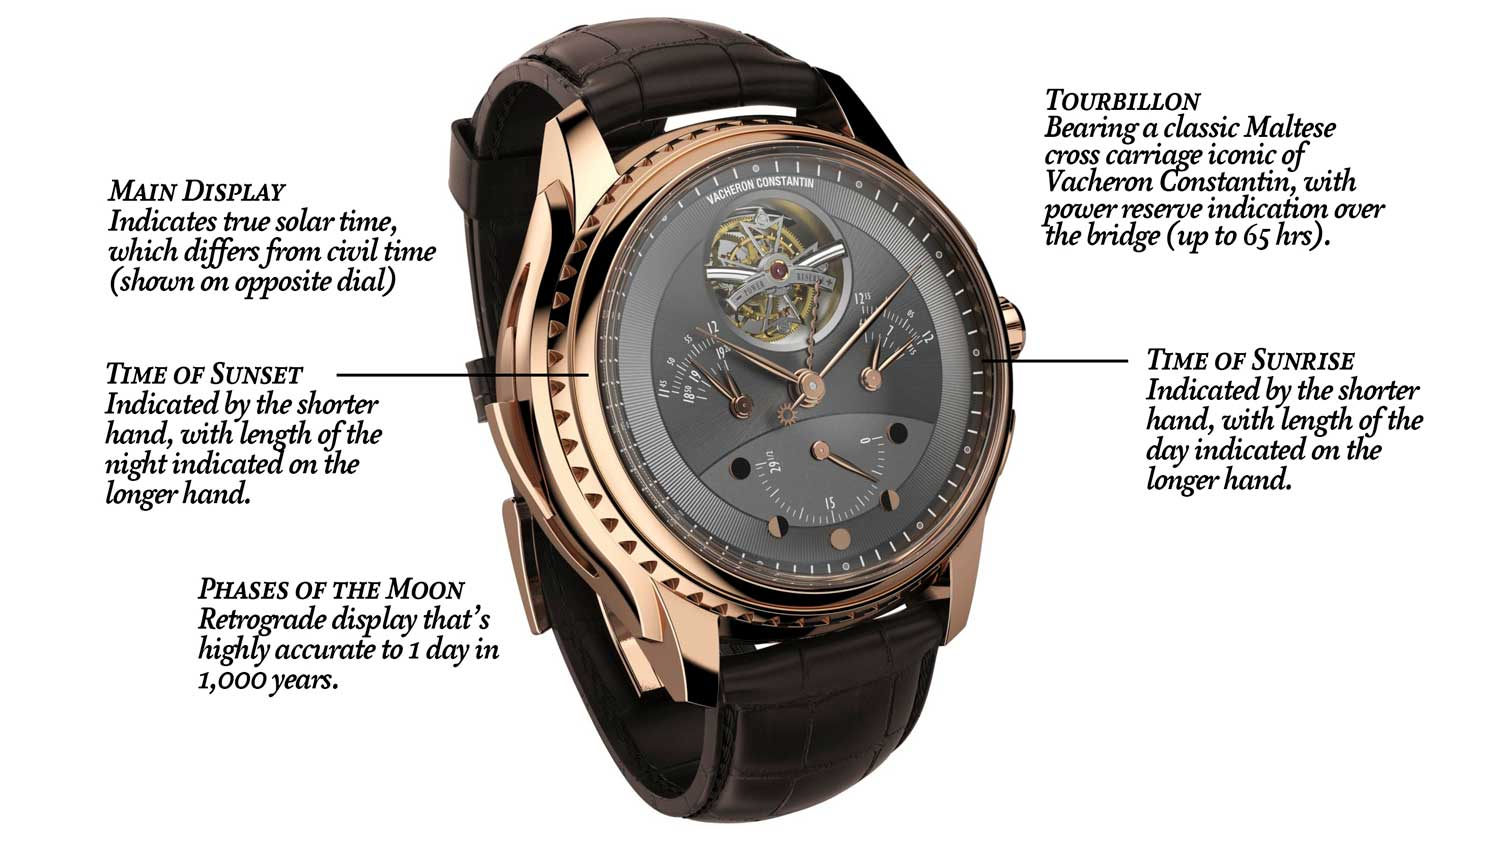 The poetic side of the watch is revealed on this end